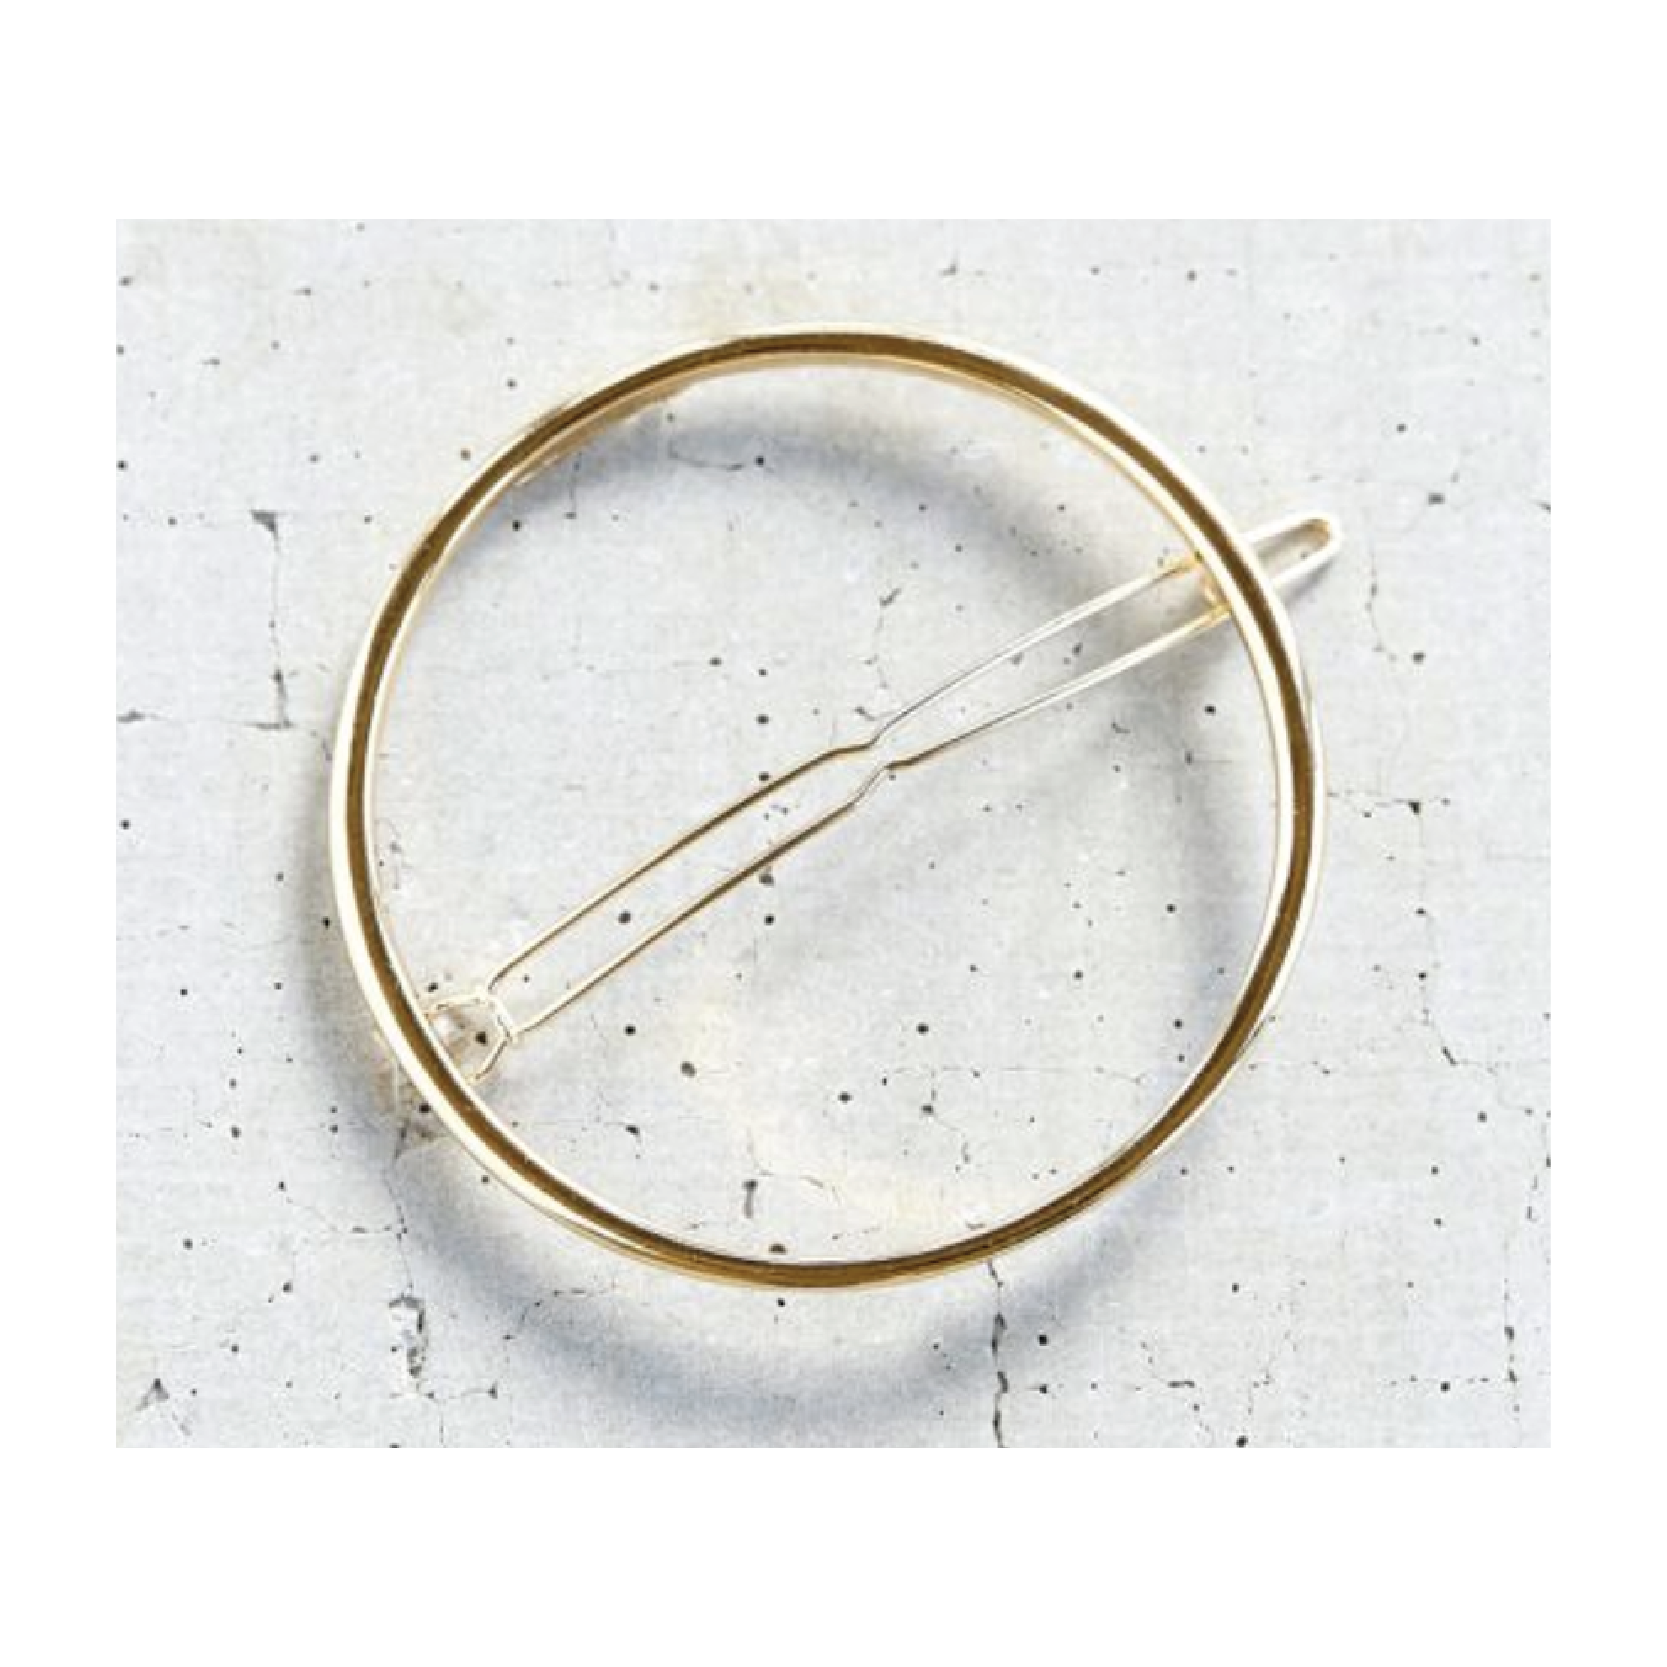 Margot Hair Pin - On sale for $10 at Urban OutfittersFor the minimalist in your life.